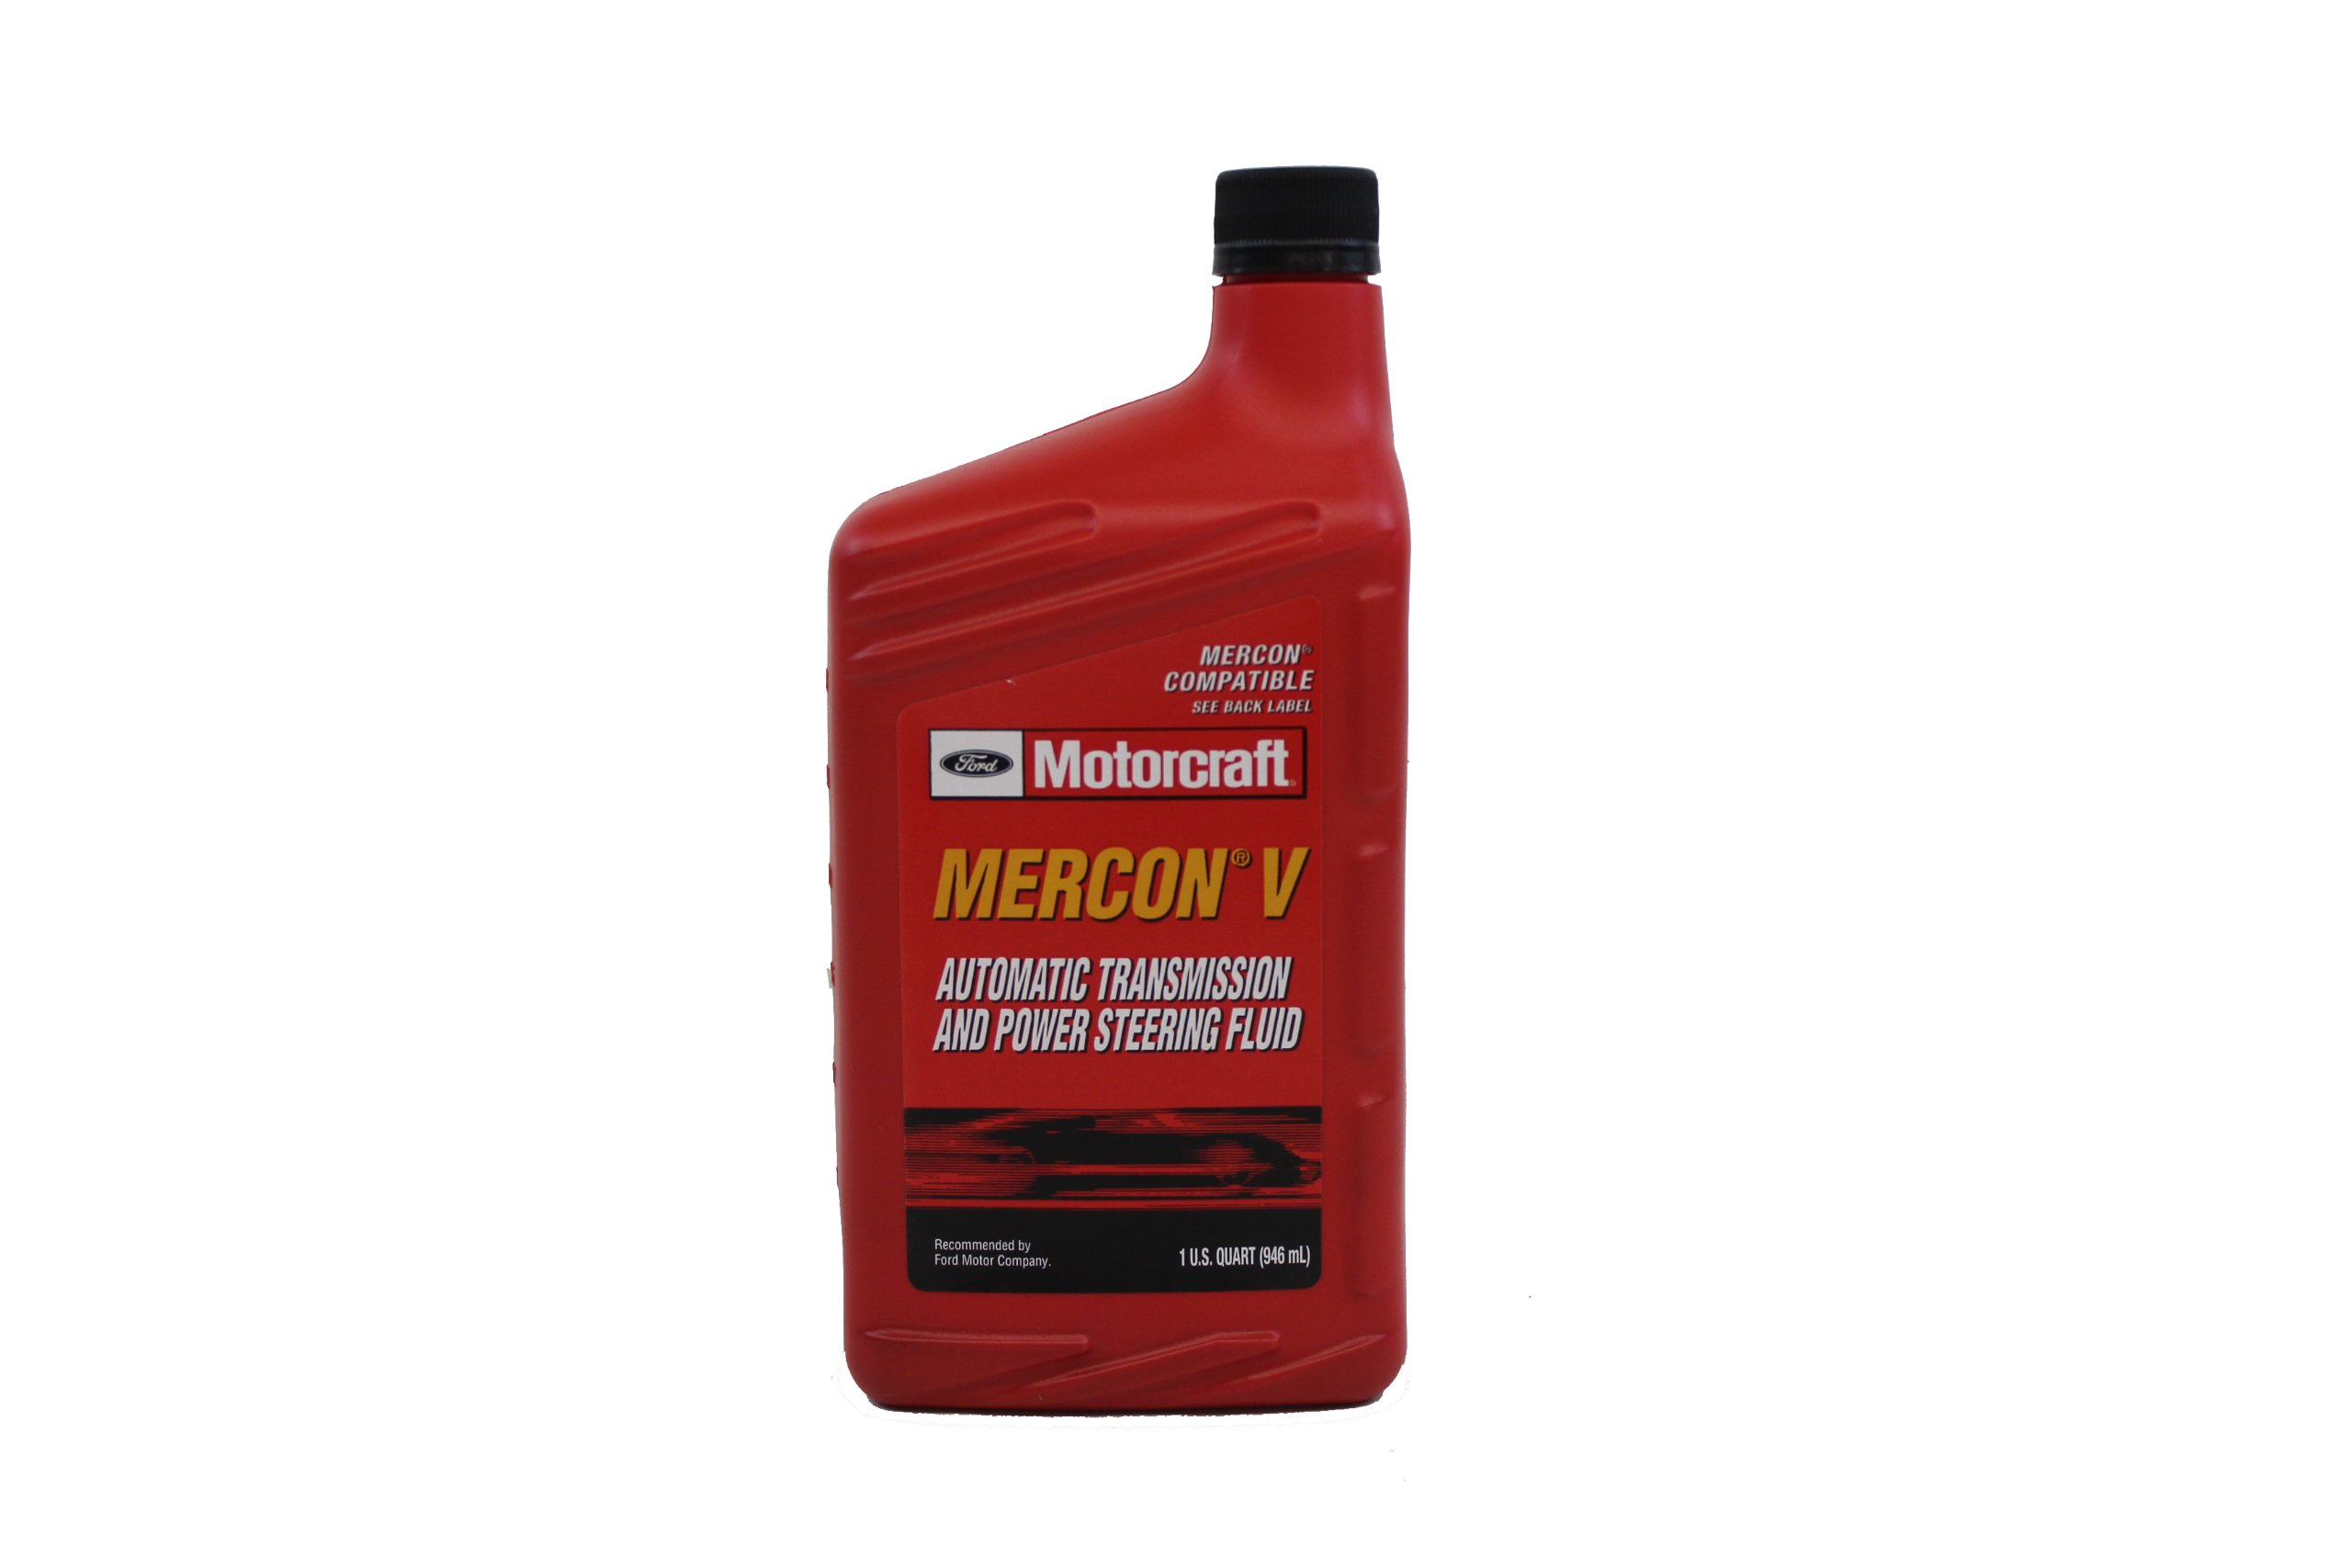 Ford Genuine XT-5-QMC MERCON-V Automatic Transmission and Power Steering Fluid - 16 oz. by Ford